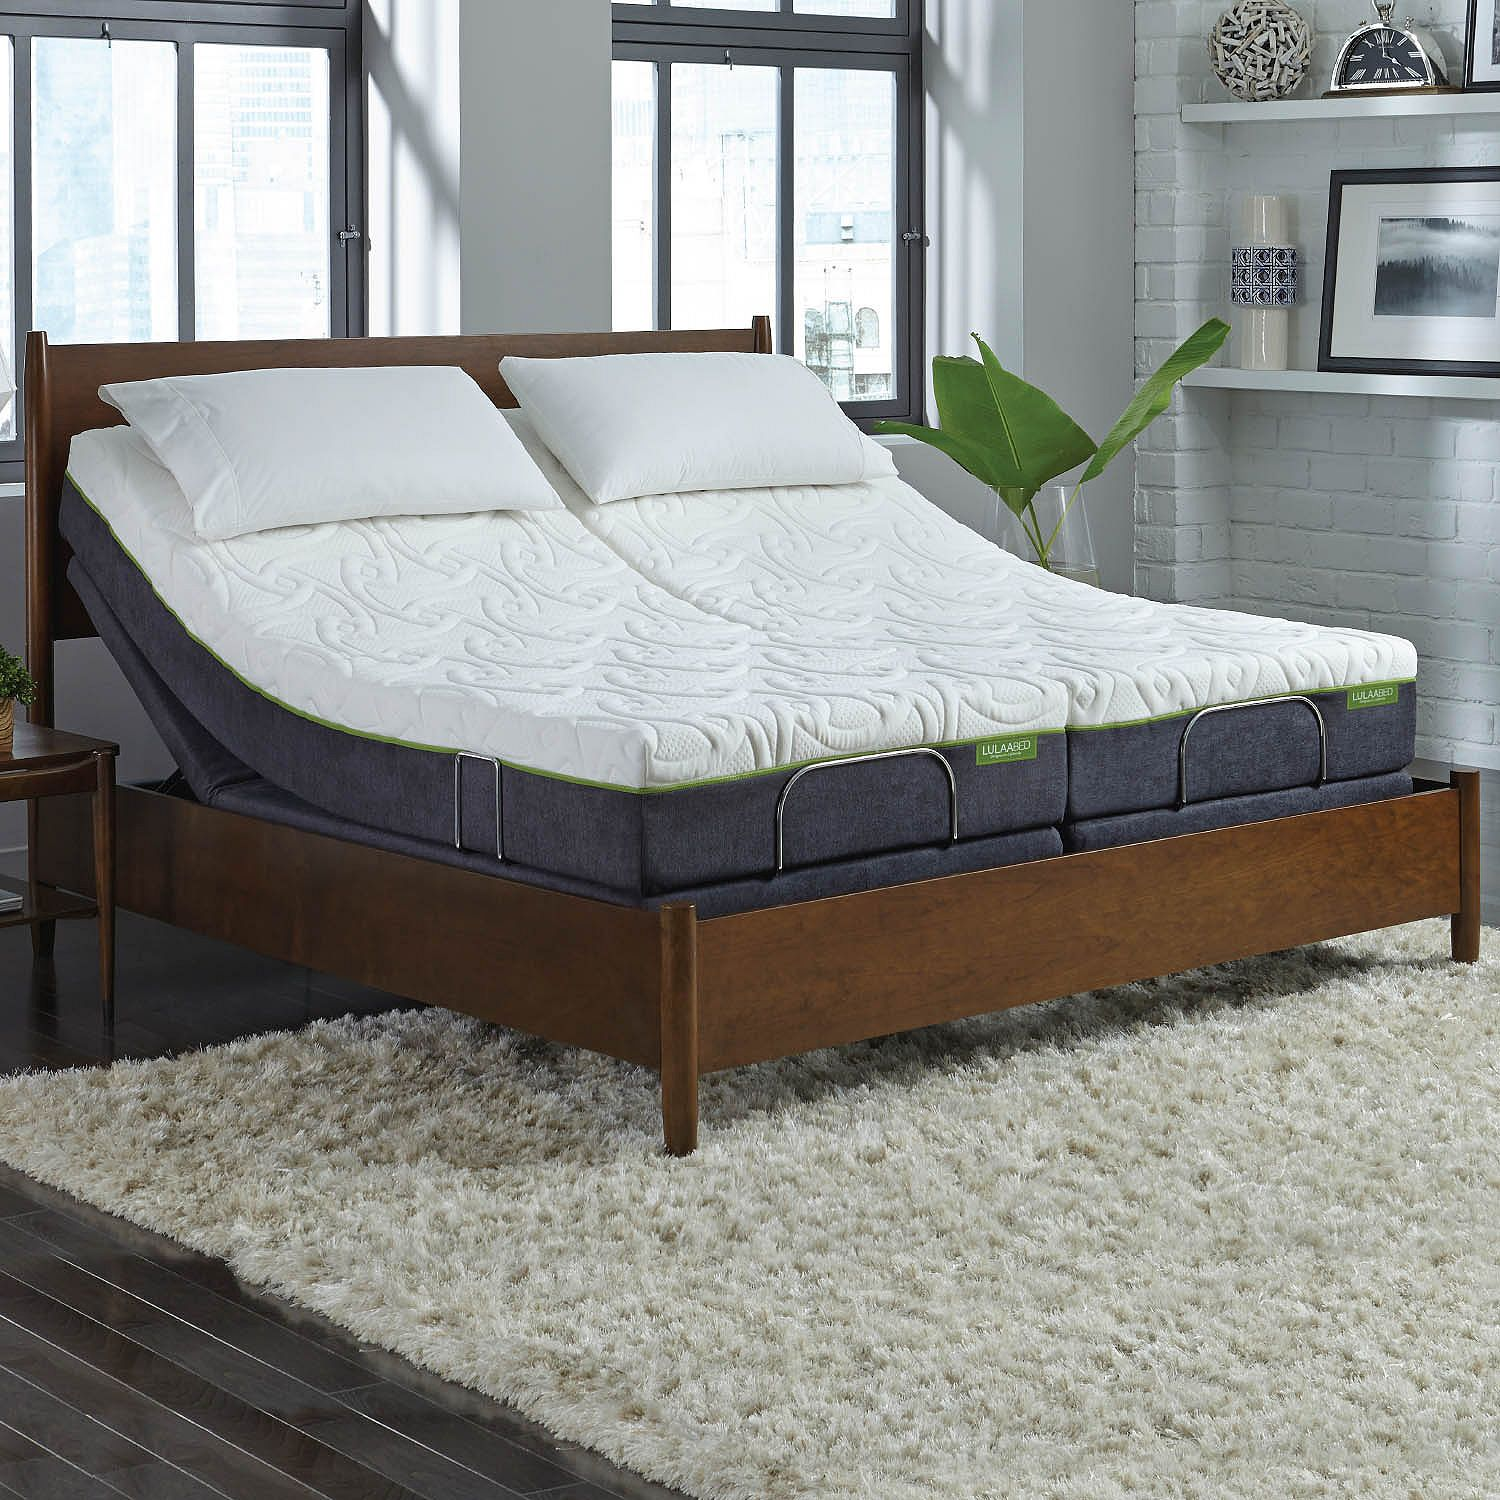 electric king mattress comfortsleeping adjustable au base split leura bed com basesplit